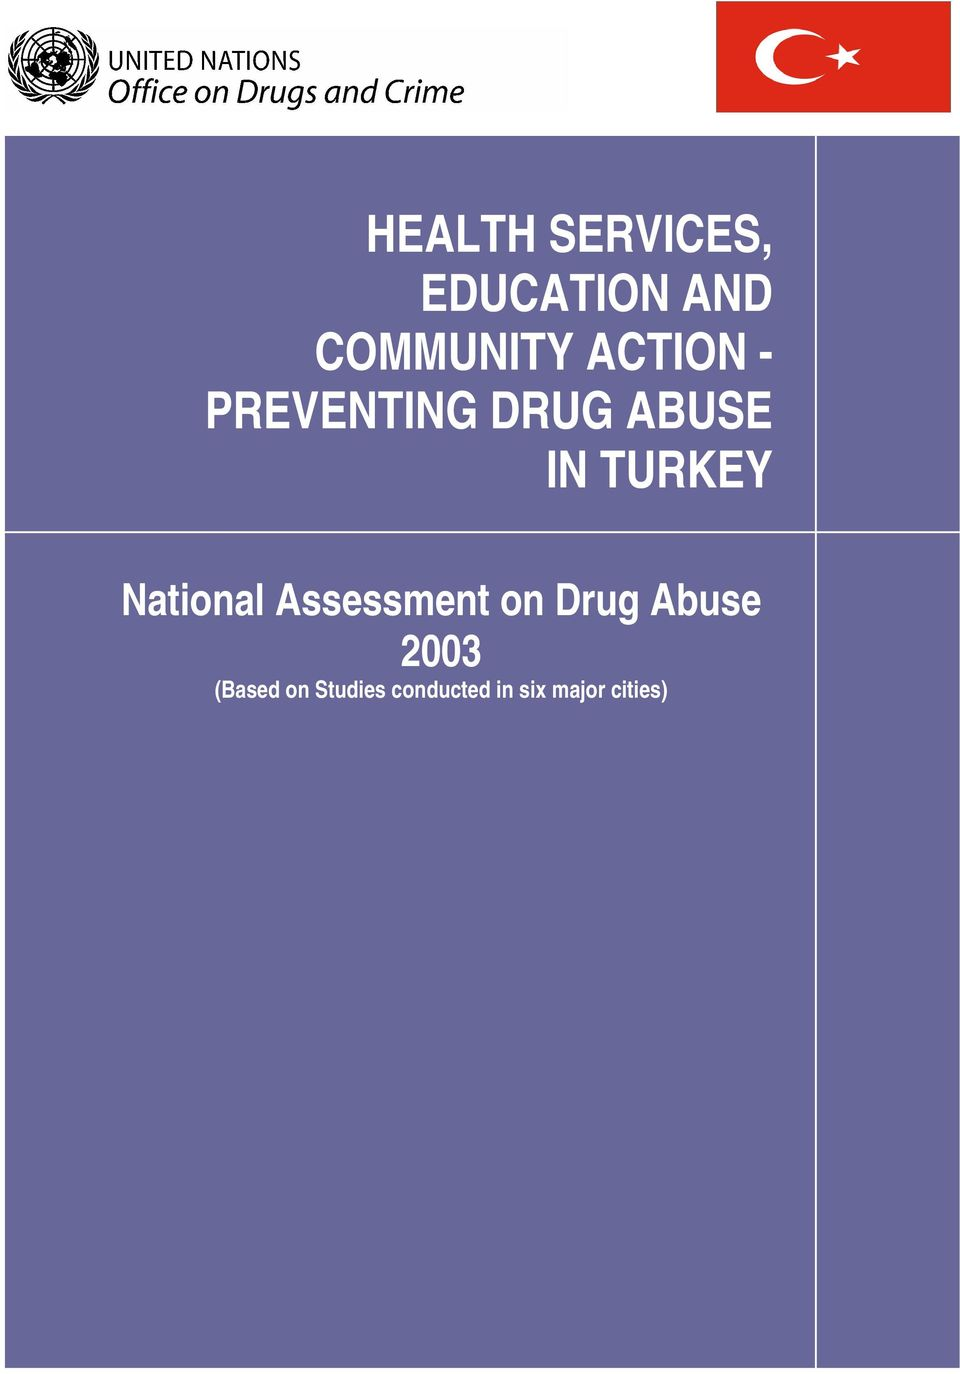 National Assessment on Drug Abuse 2003